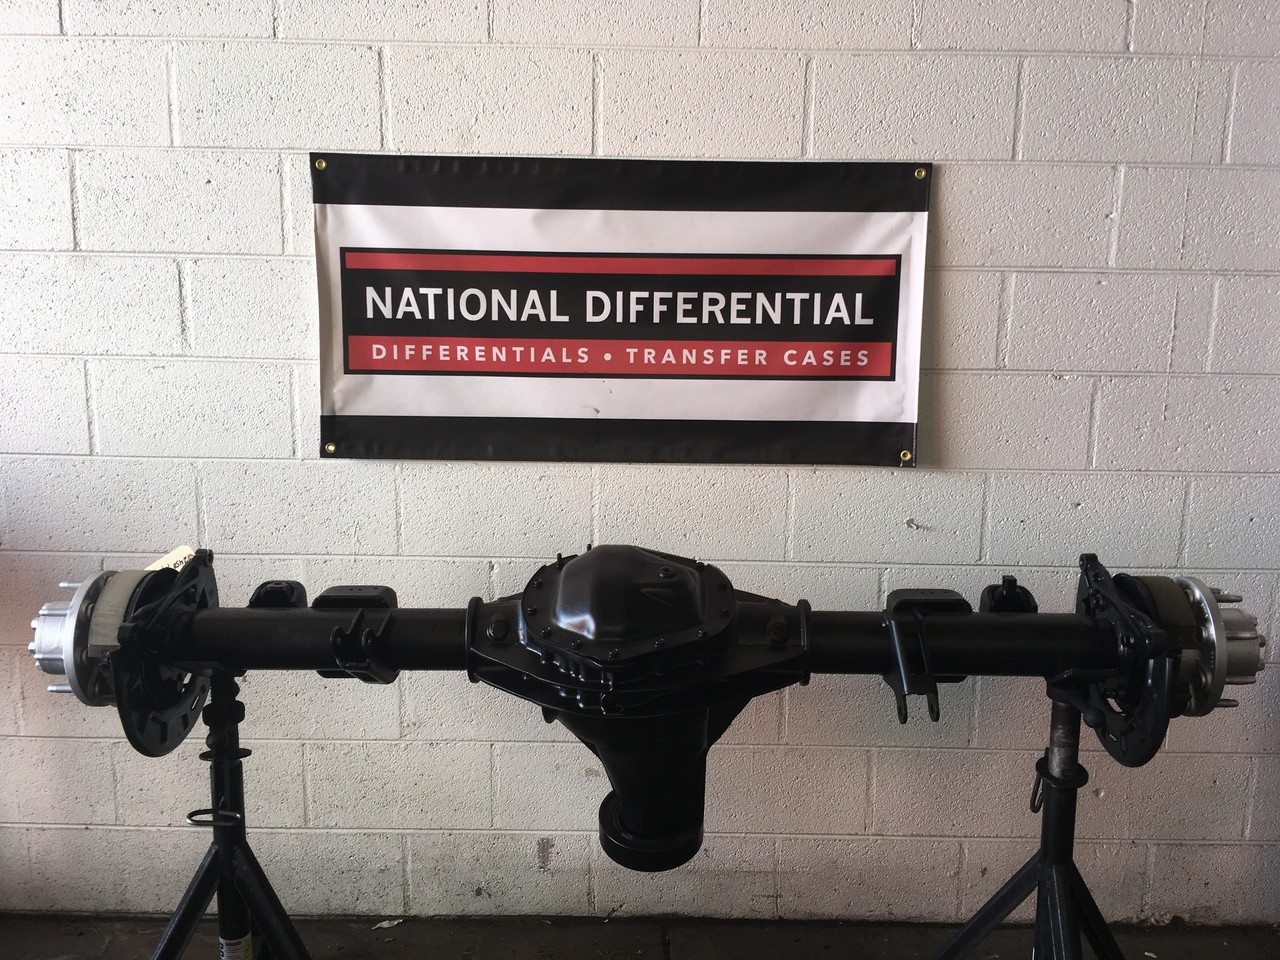 11.5-inch Rear Differential for 2011-2017 GMC 3500 Sierra or Denali Trucks available with a 3.73 or 4.10 gear ratios